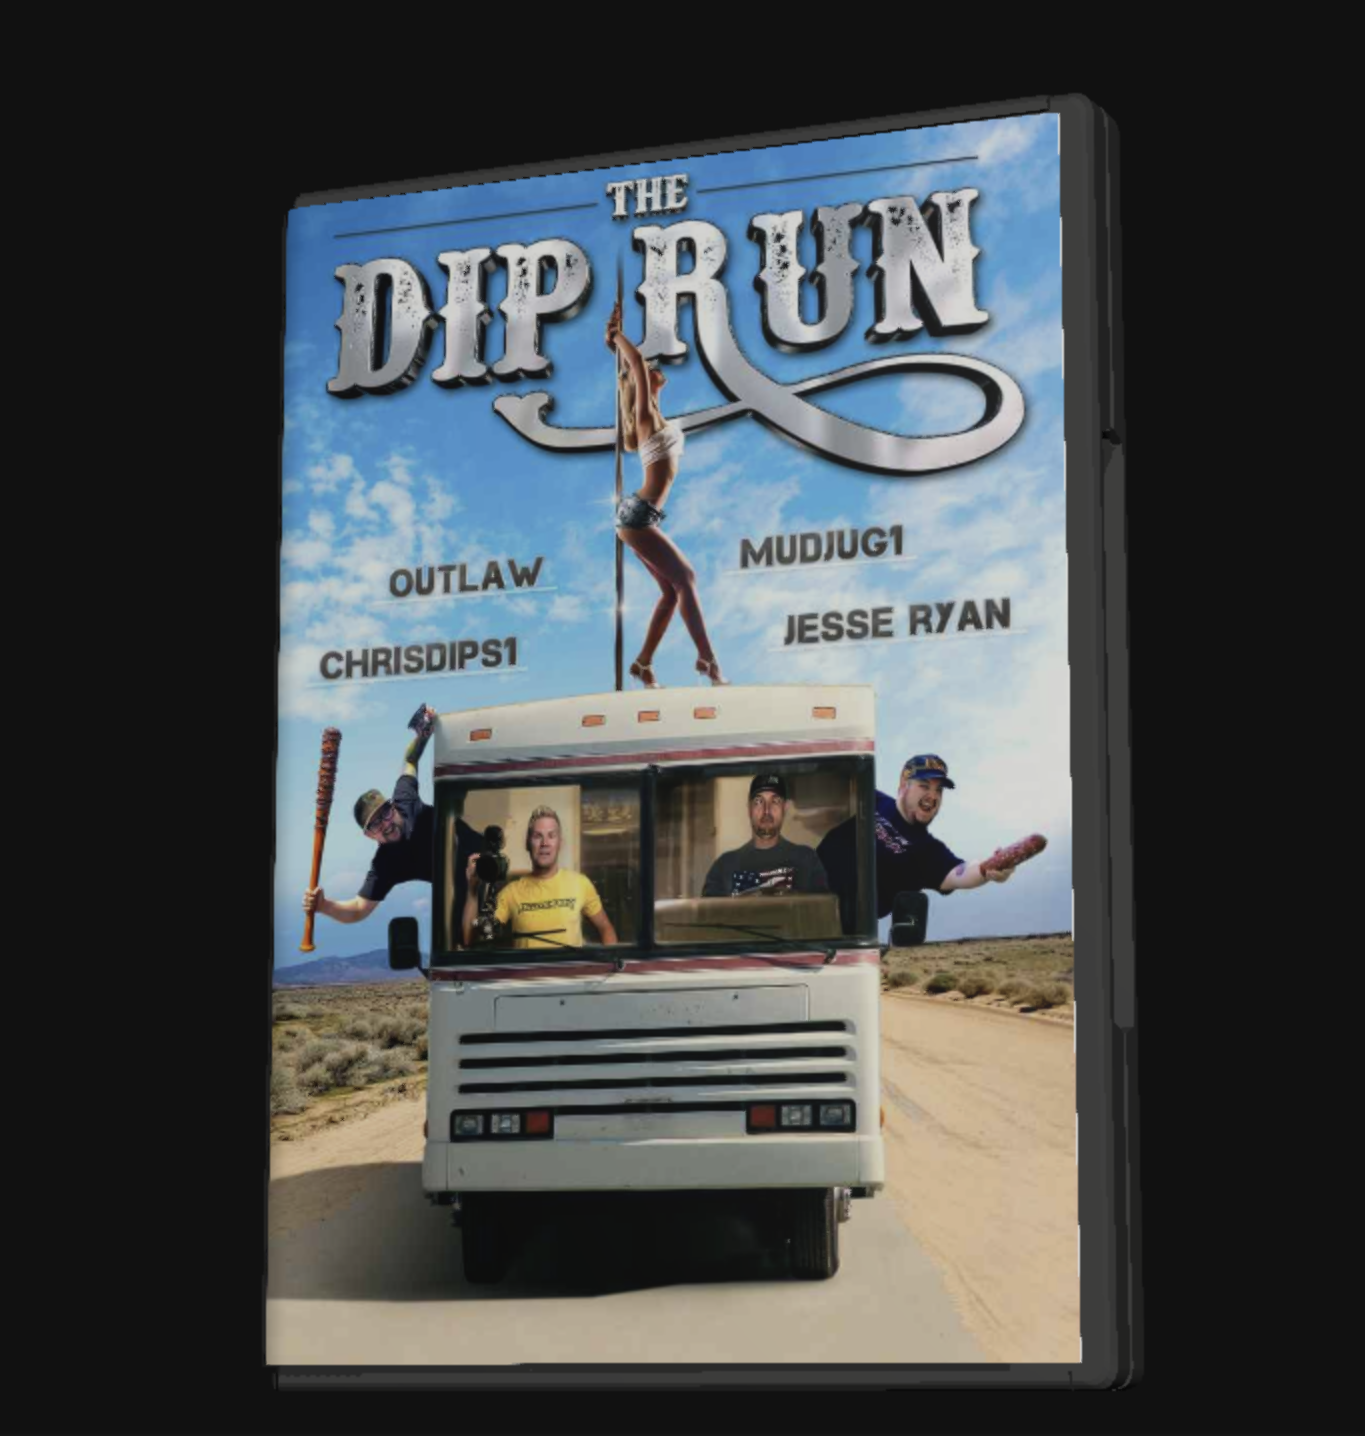 The Dip Run DVD